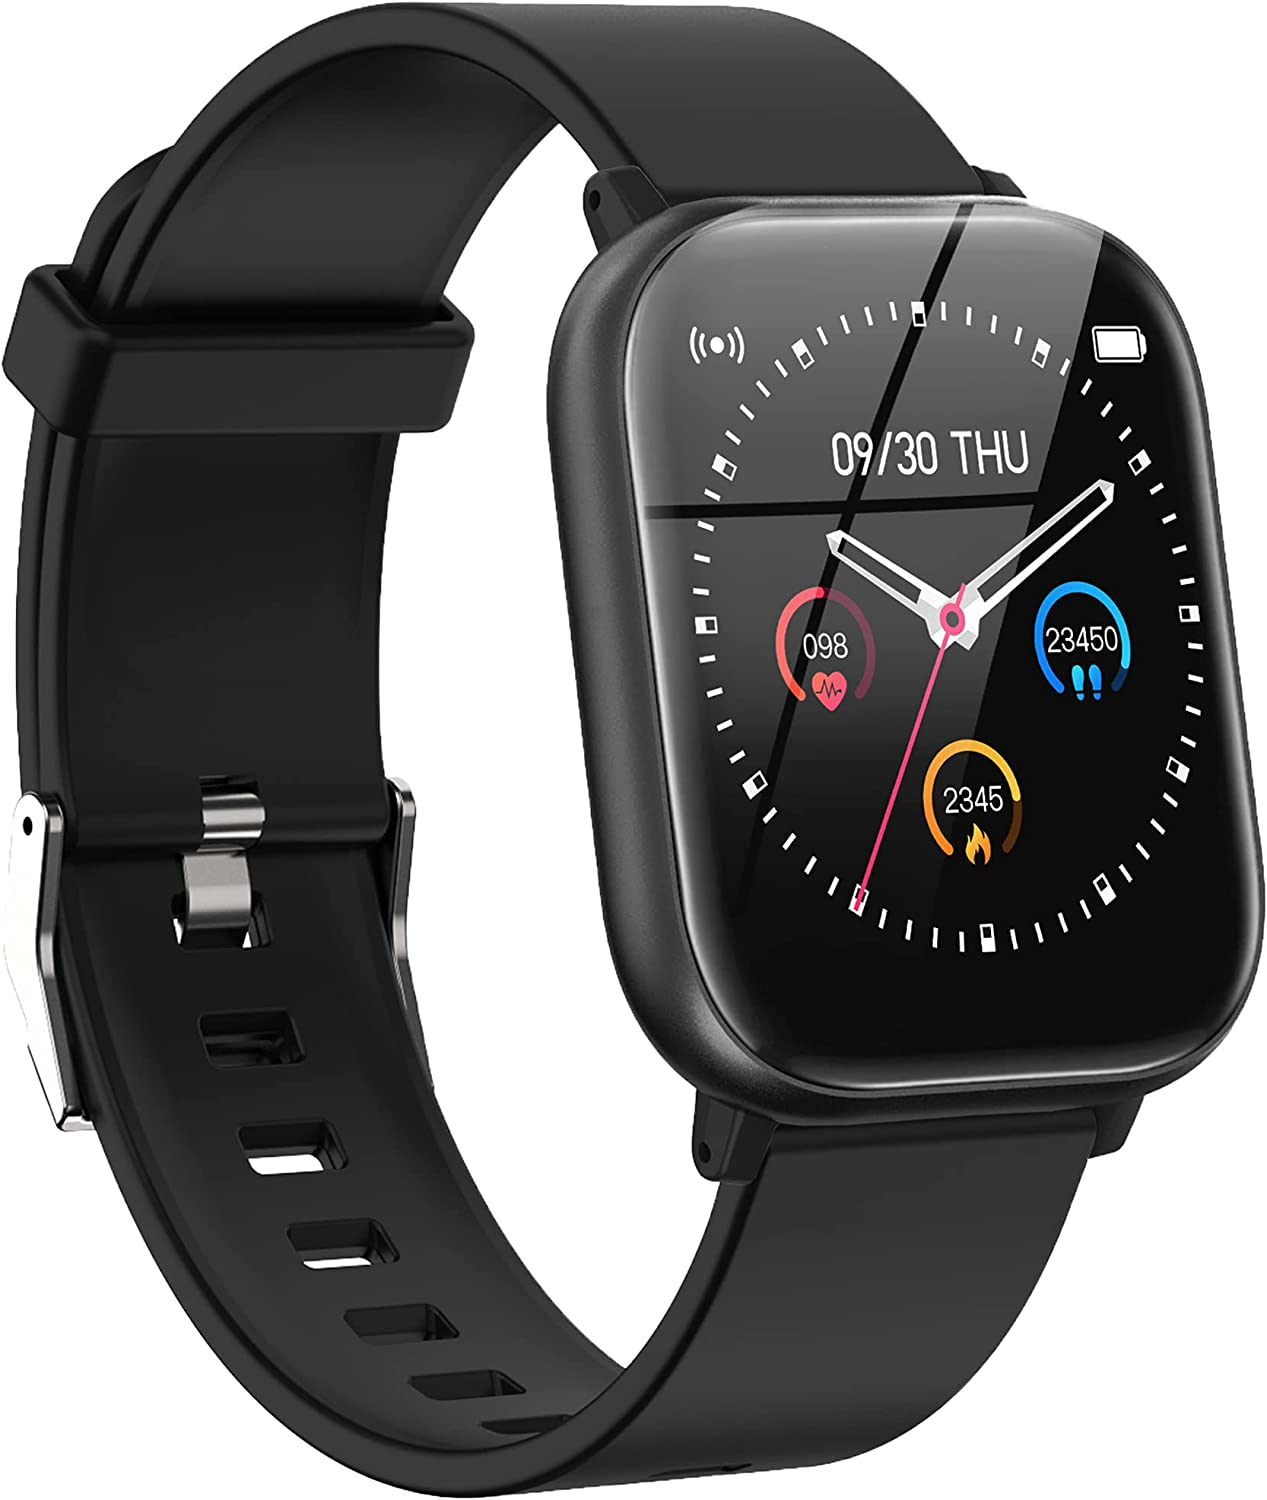 Smart Watch for Android Phones Compatible iPhone Samsung, Health Sport Wathes for Men Women GPS Run Activity Fitness Tracker with Blood Pressure Heart Rate Monitor, Replaceable Watch Face and Band